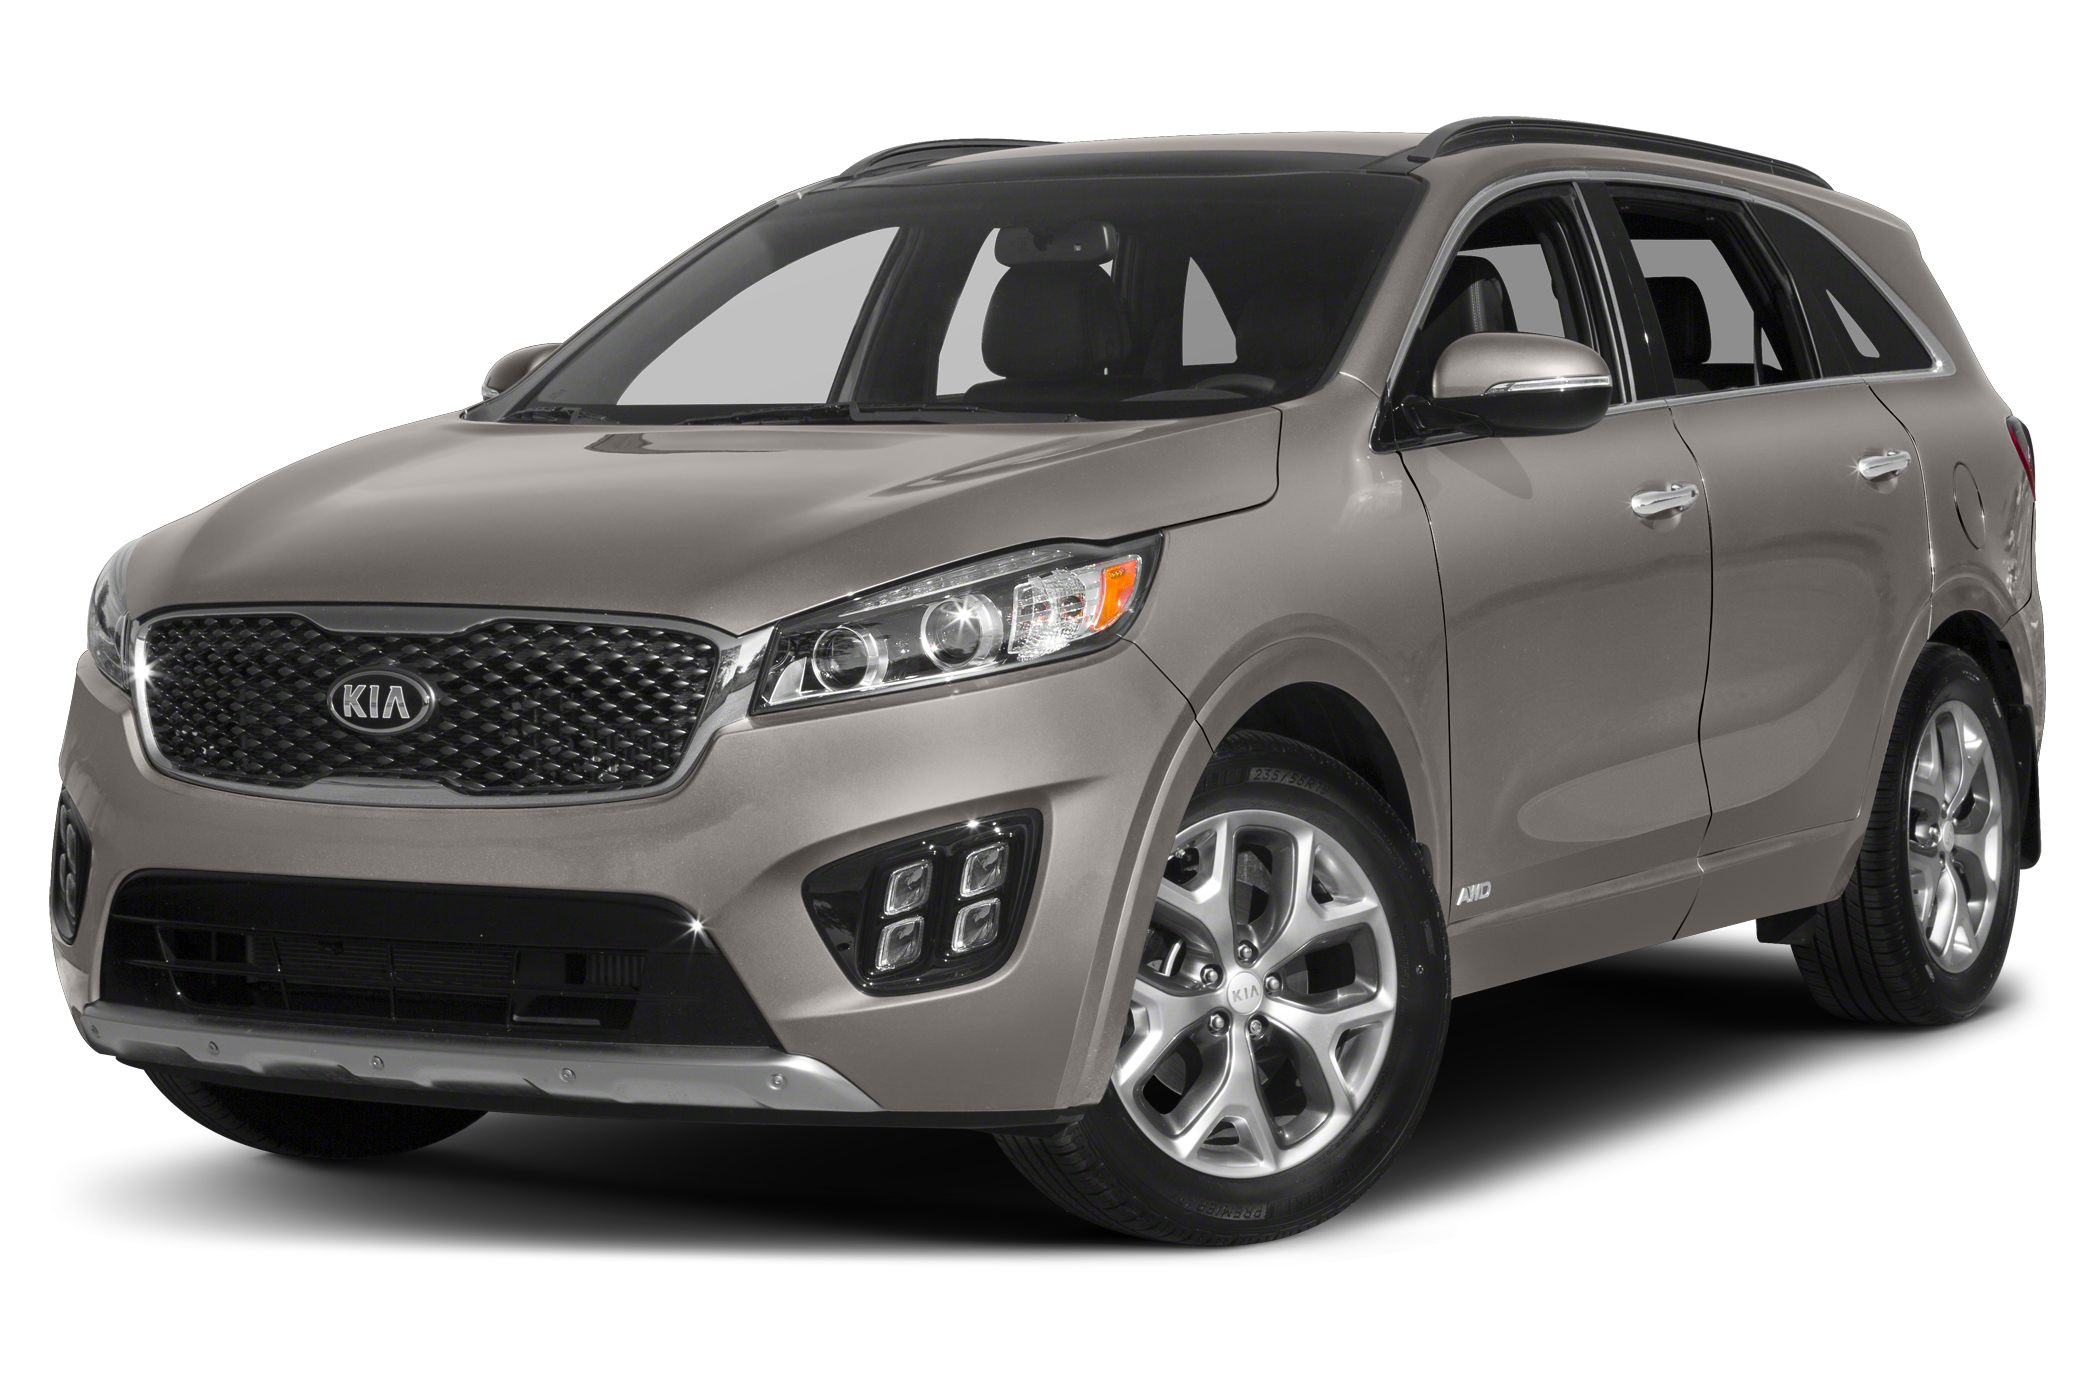 2018 Kia Sorento 3.3L SXL 4dr All-wheel Drive